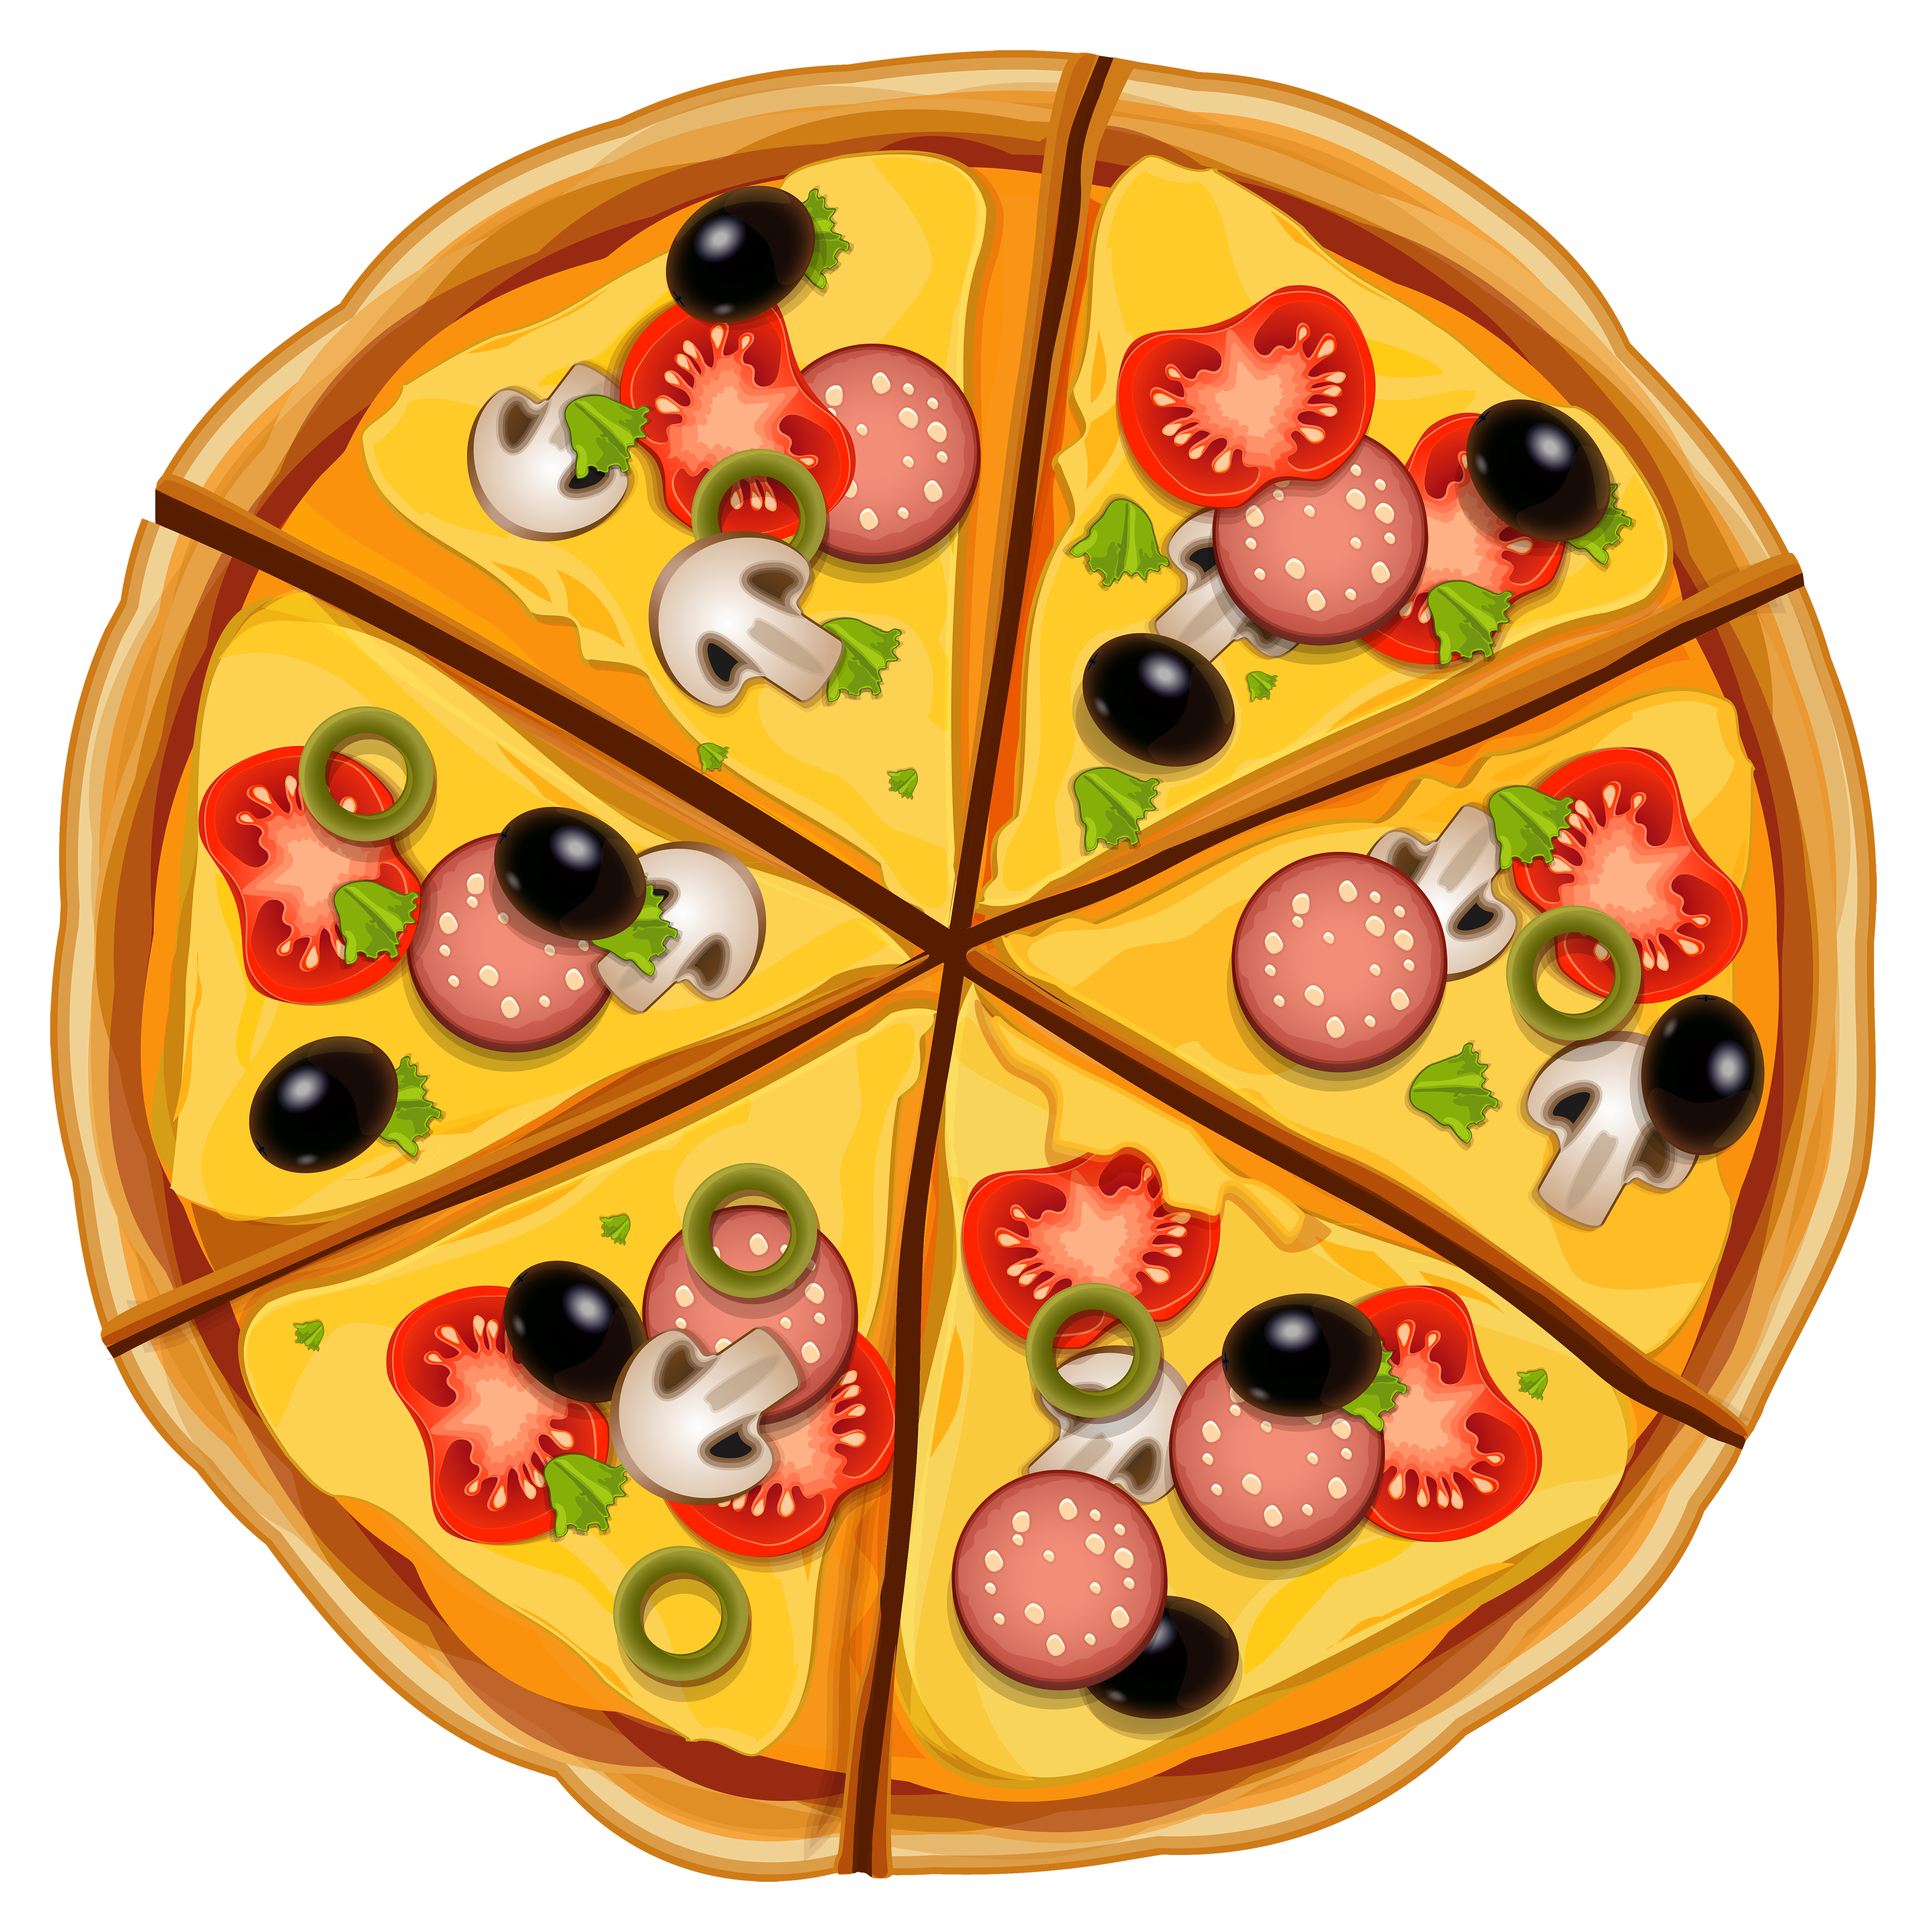 Pizza clipart png transparent stock Pizza PNG Clipart - Best WEB Clipart transparent stock